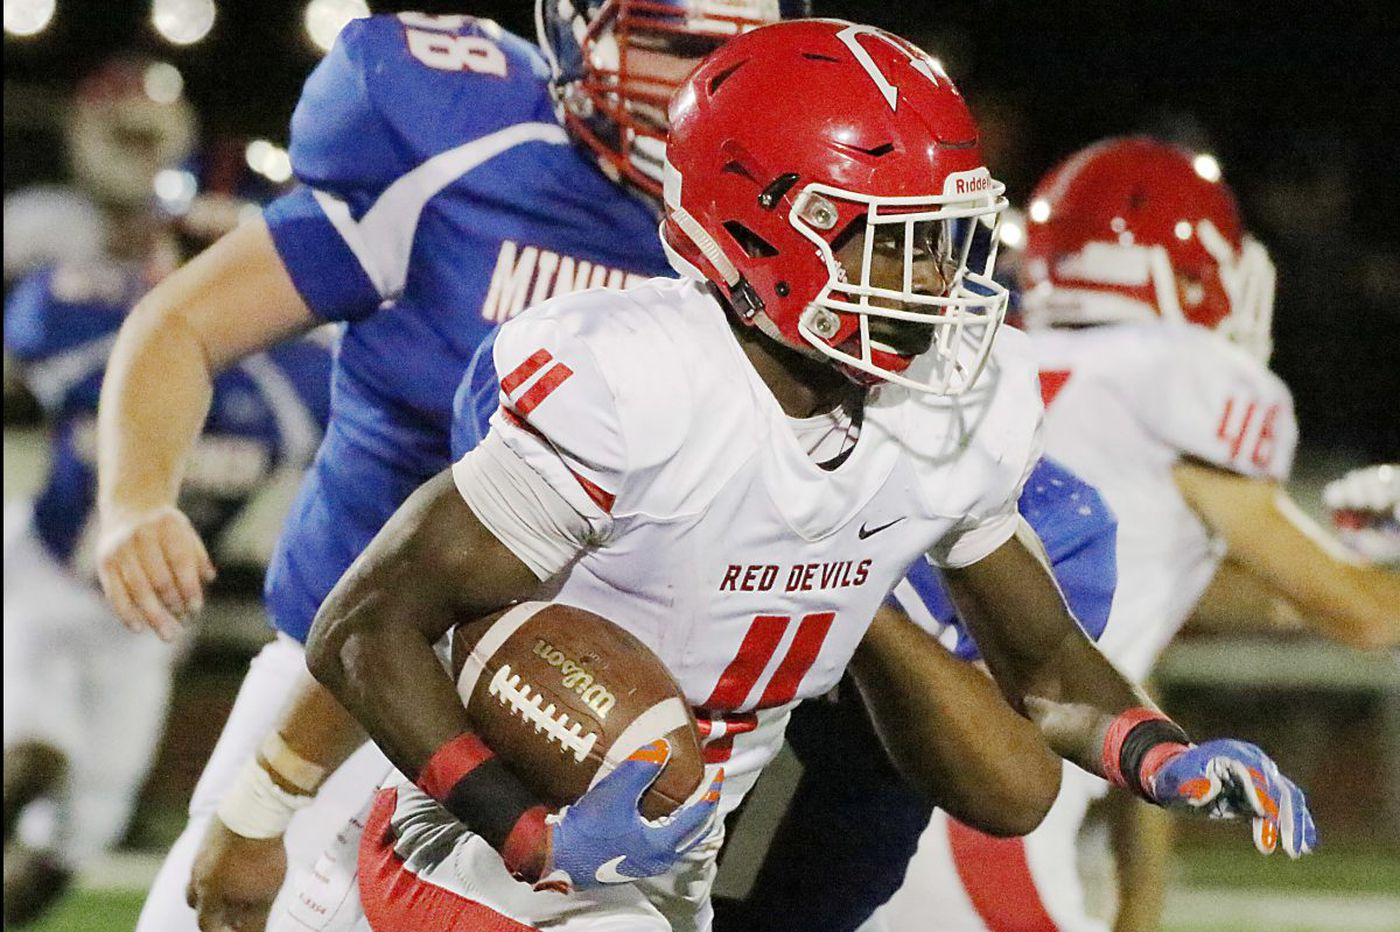 Friday's South Jersey football roundup: Rancocas Valley stuns Millville on trick play